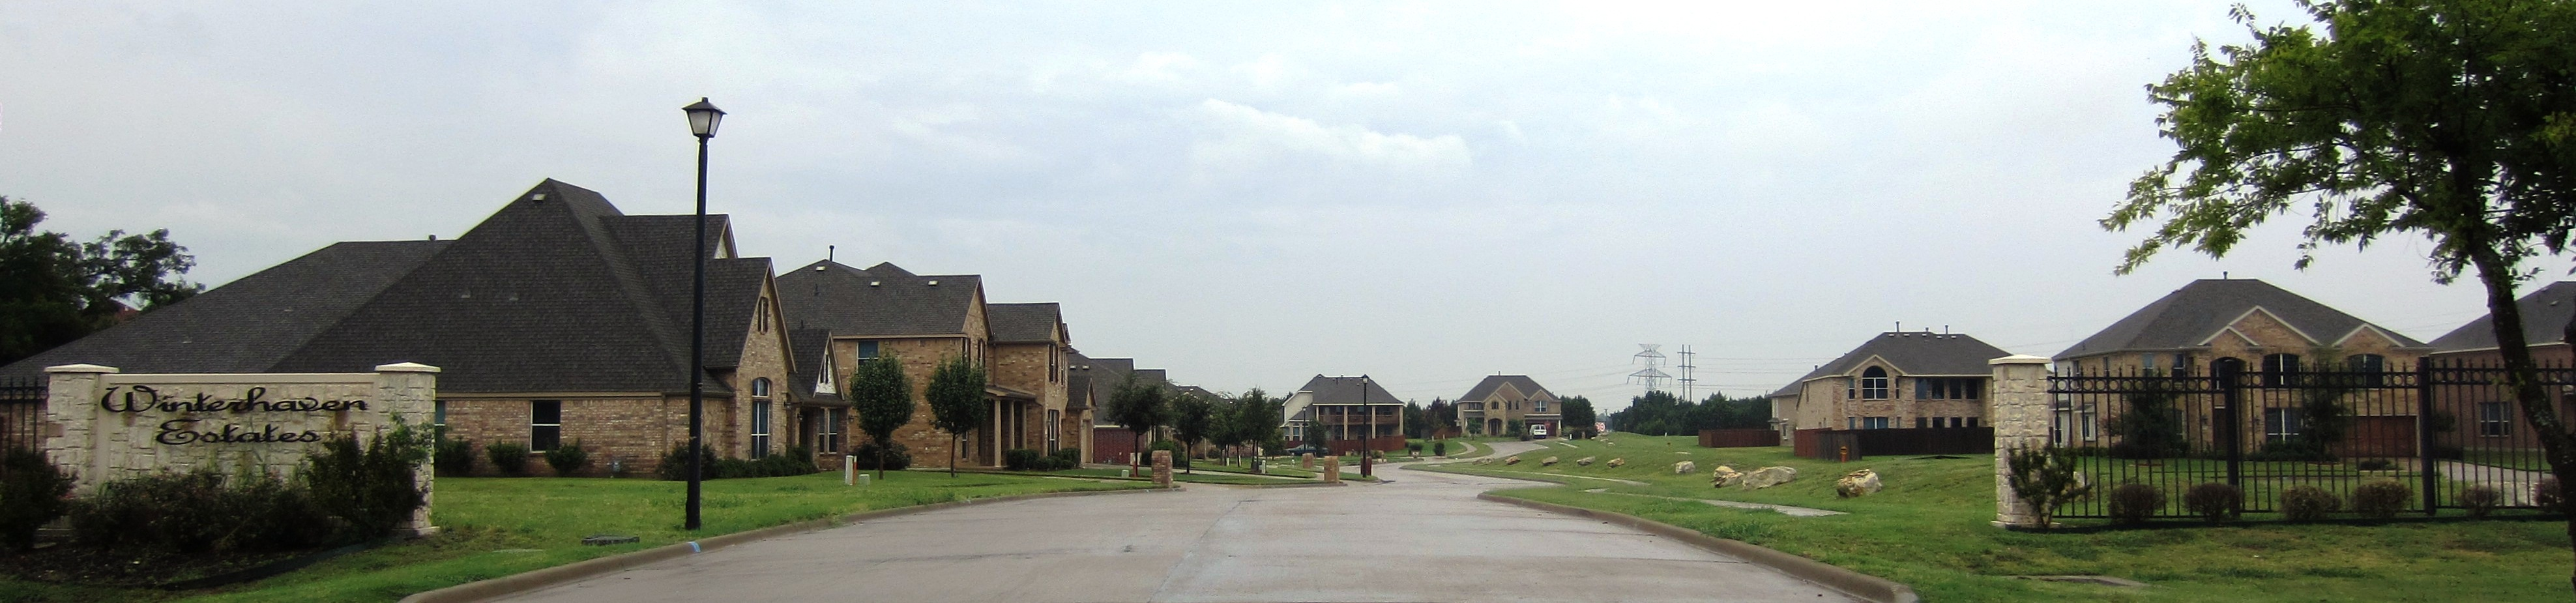 Winterhaven Estates Neighborhood Entrance